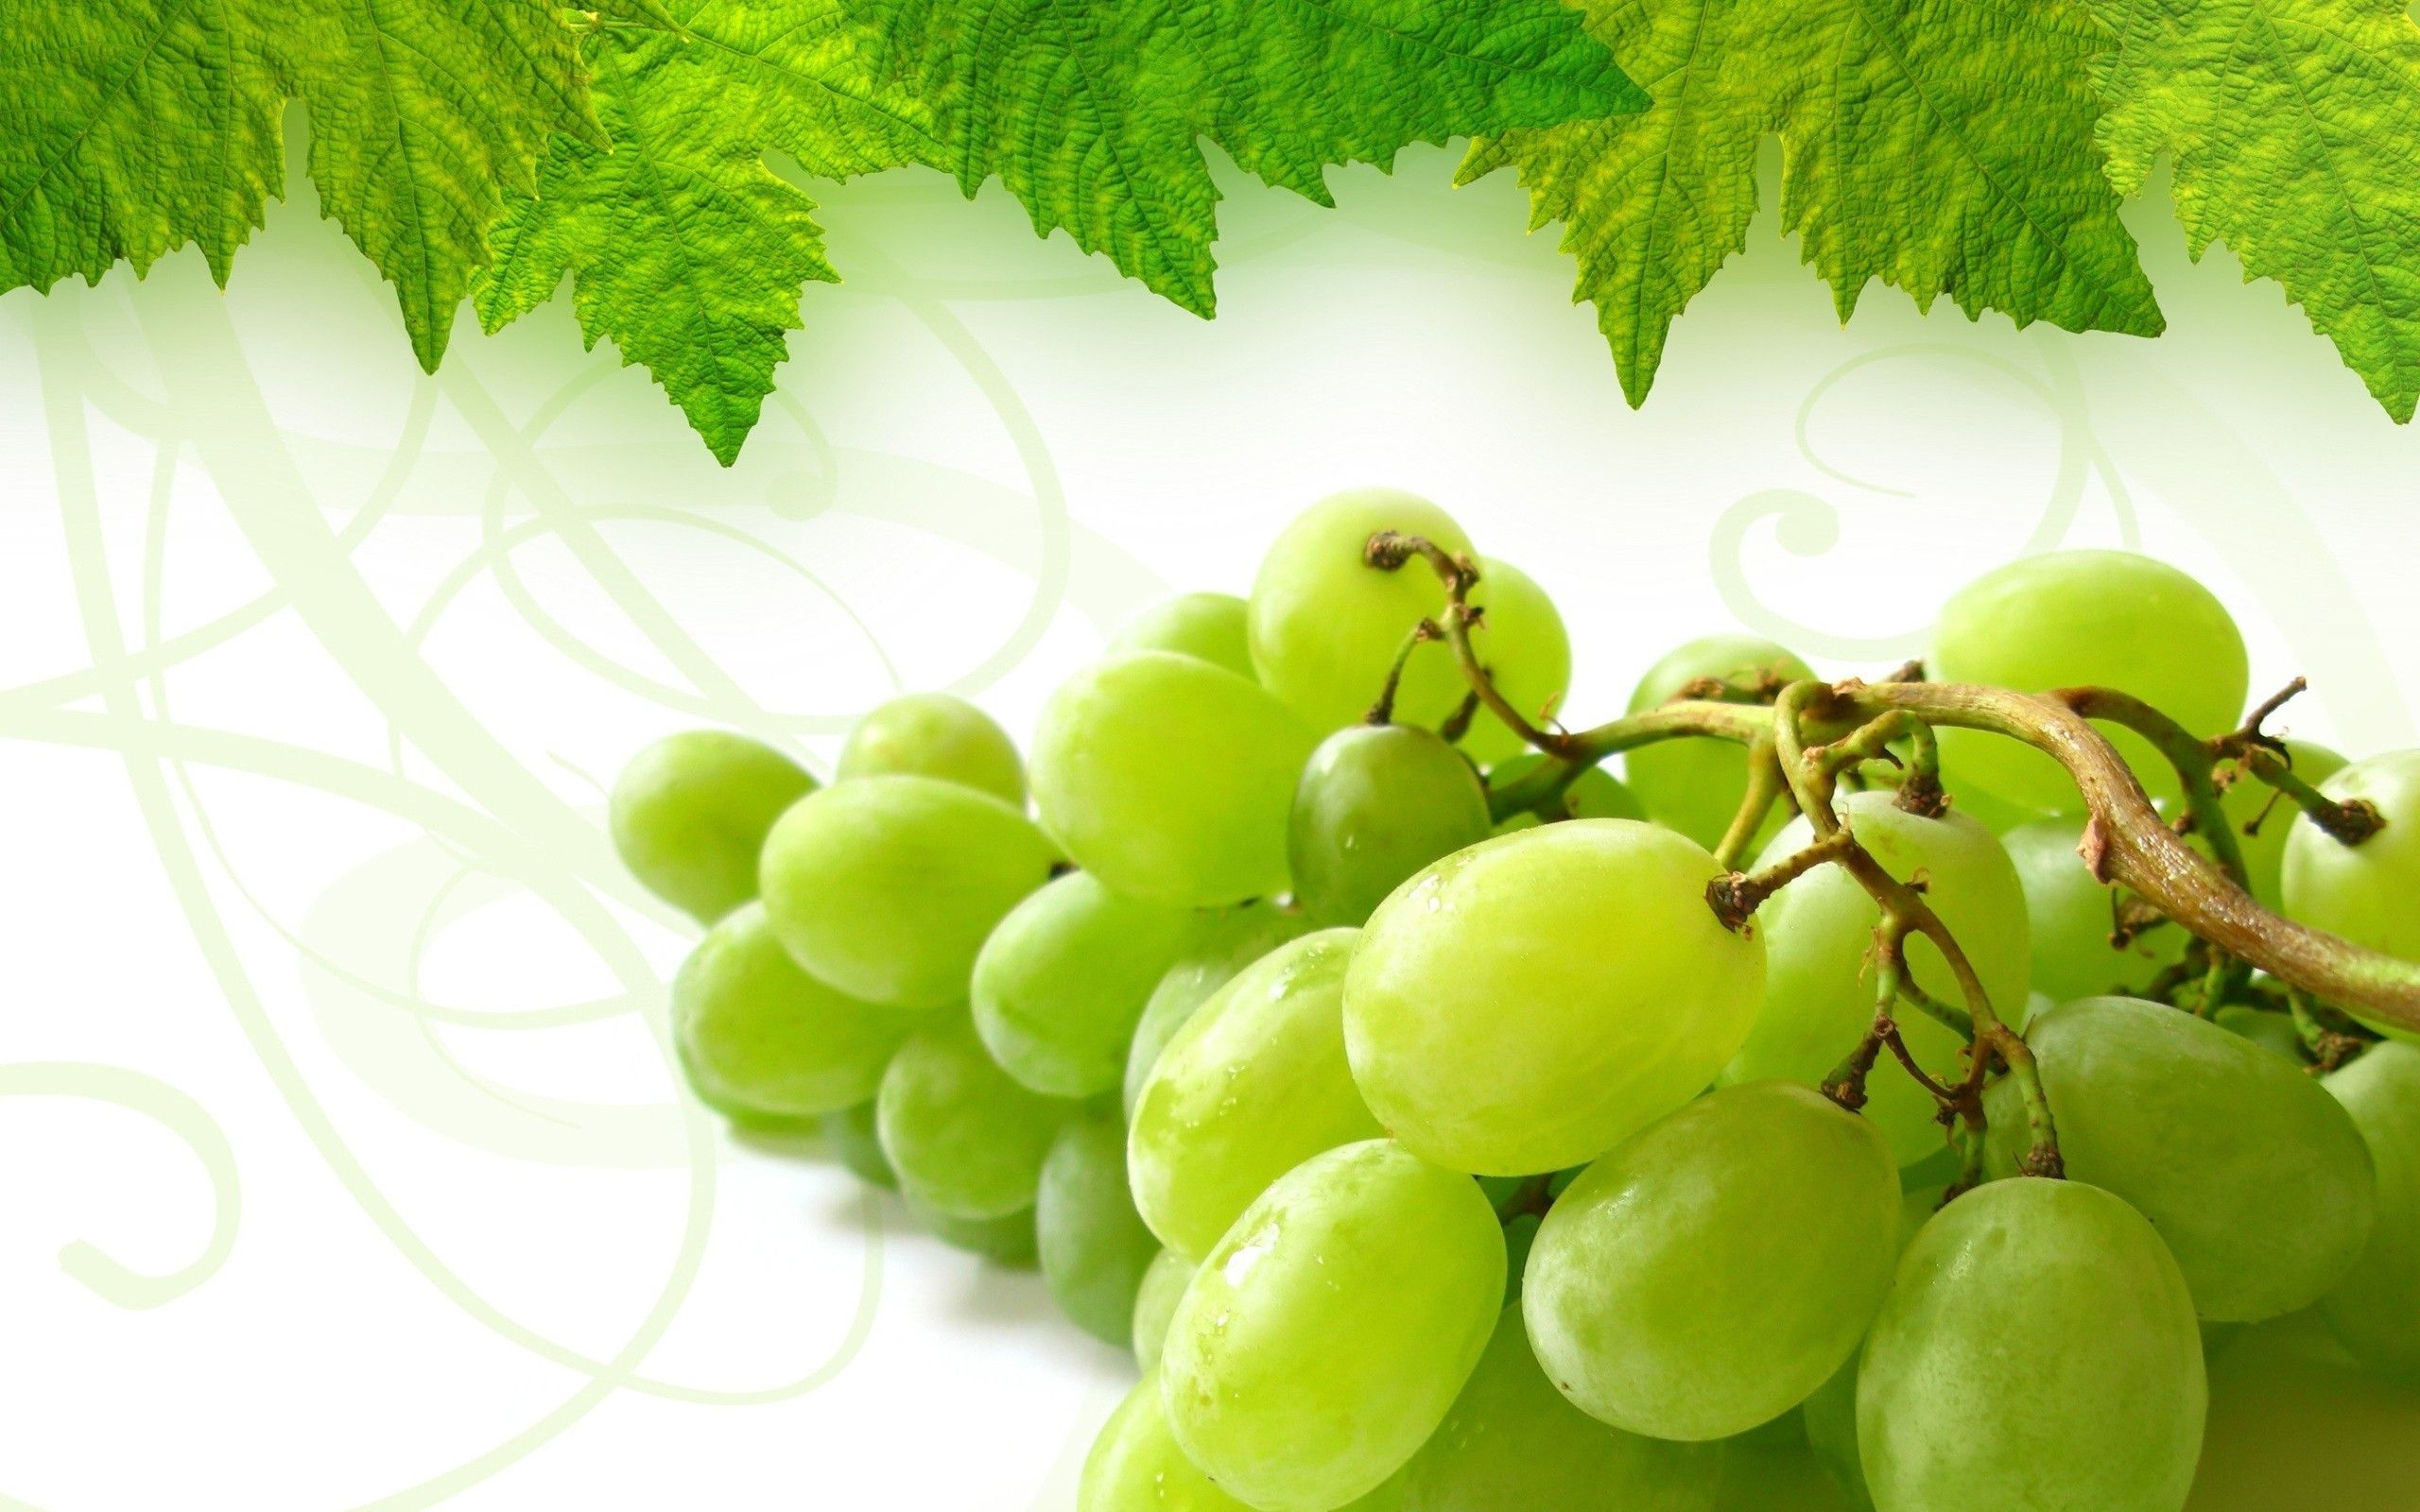 Free download grapes hd wallpaper for laptop DHD Wallpaper